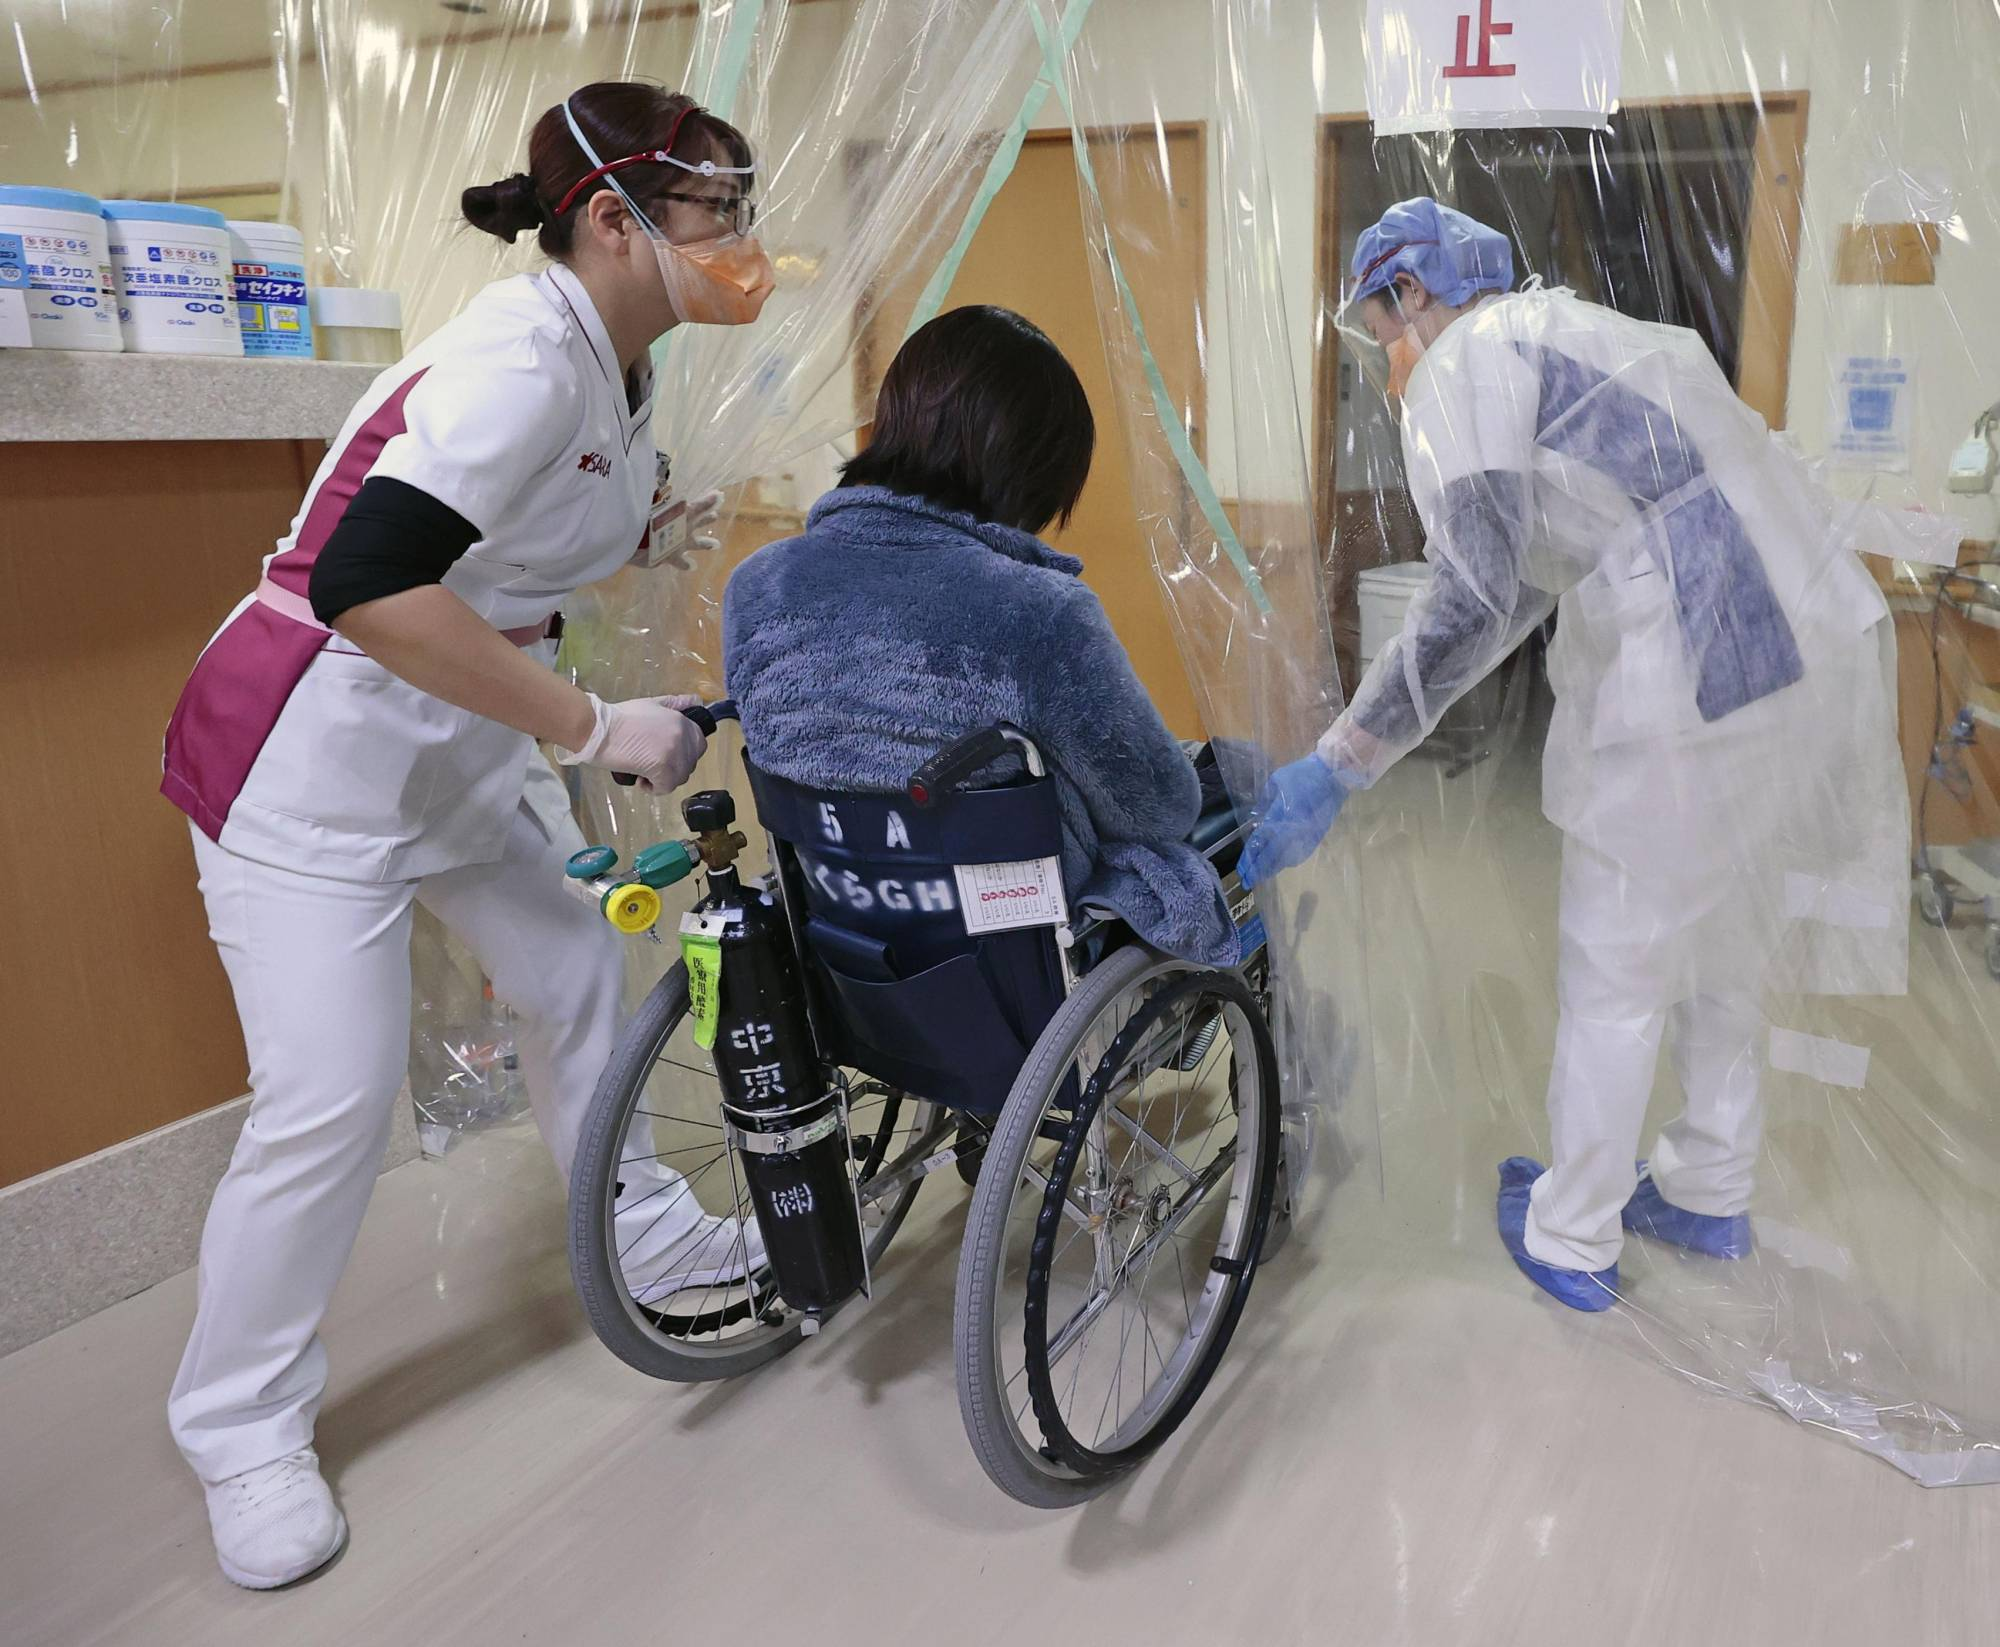 A coronavirus patient is wheeled inside Sakura General Hospital in the town of Oguchi, Aichi Prefecture, in January. A relative shortage of doctors is making it difficult for Japan to treat coronavirus patients. | KYODO